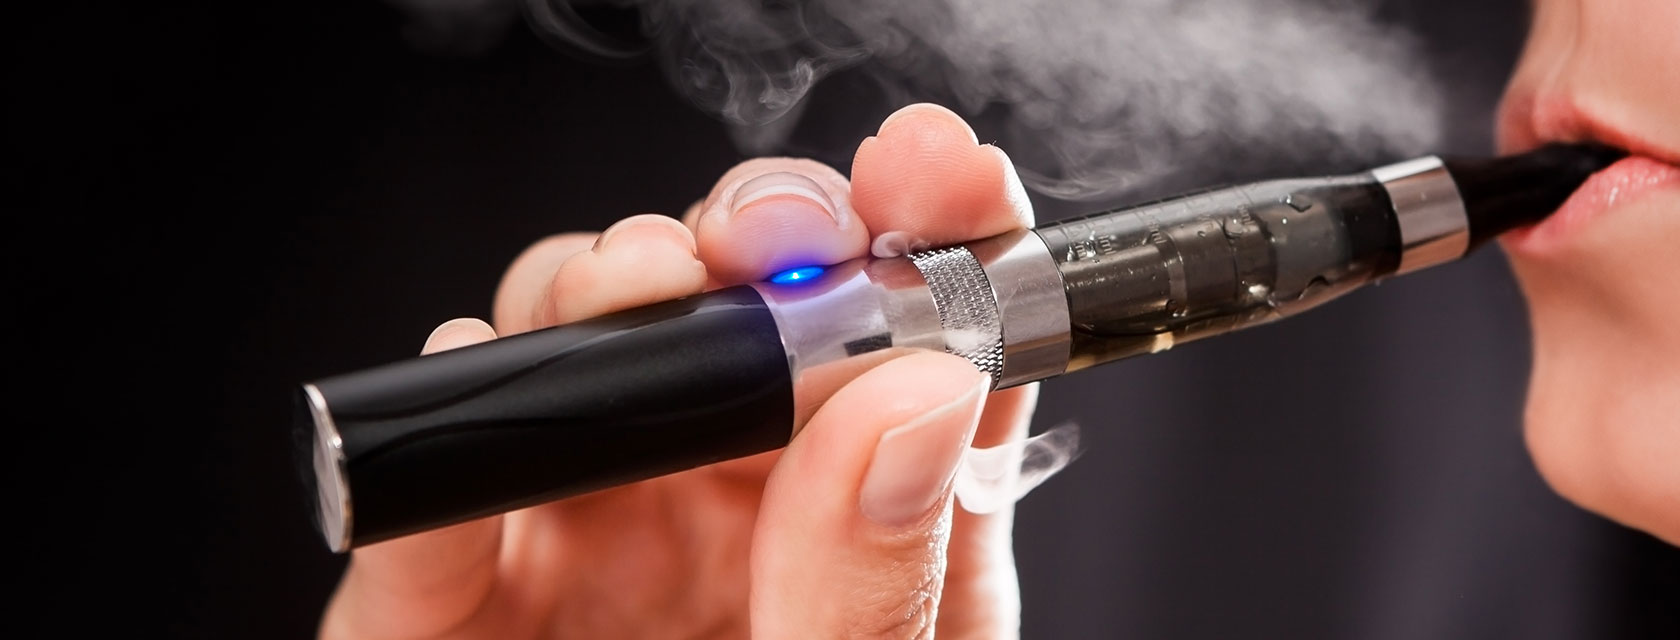 E-cigarettes actually encouraging youth to smoke: study